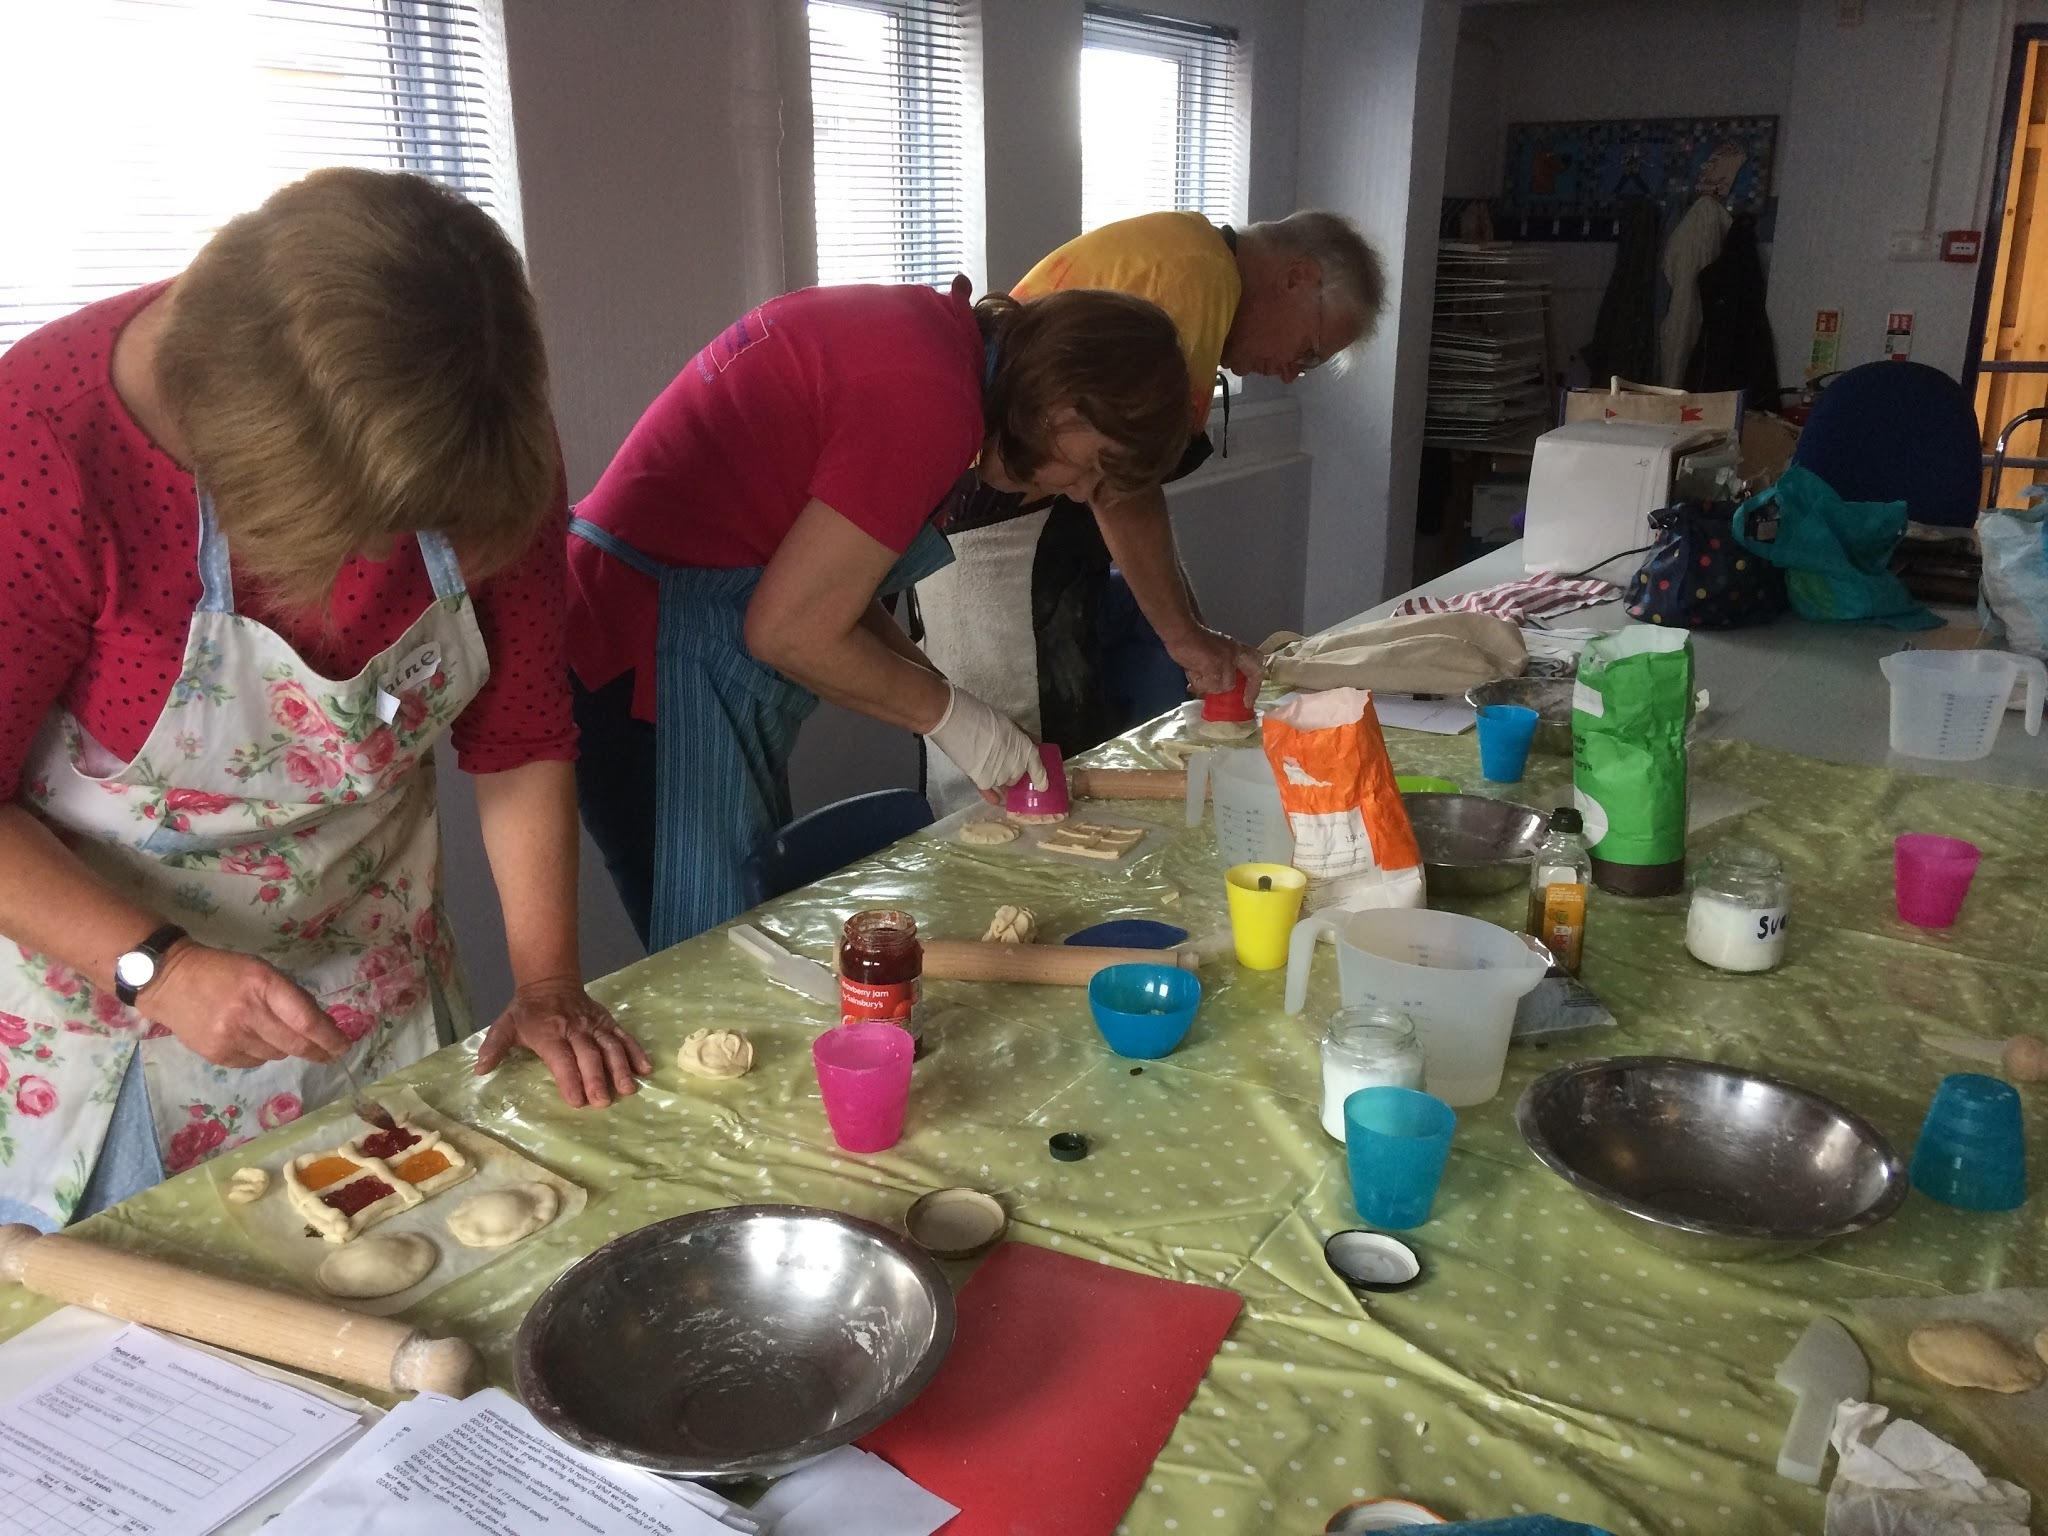 BREADMAKING MADE EASY Wellington 25/5/17